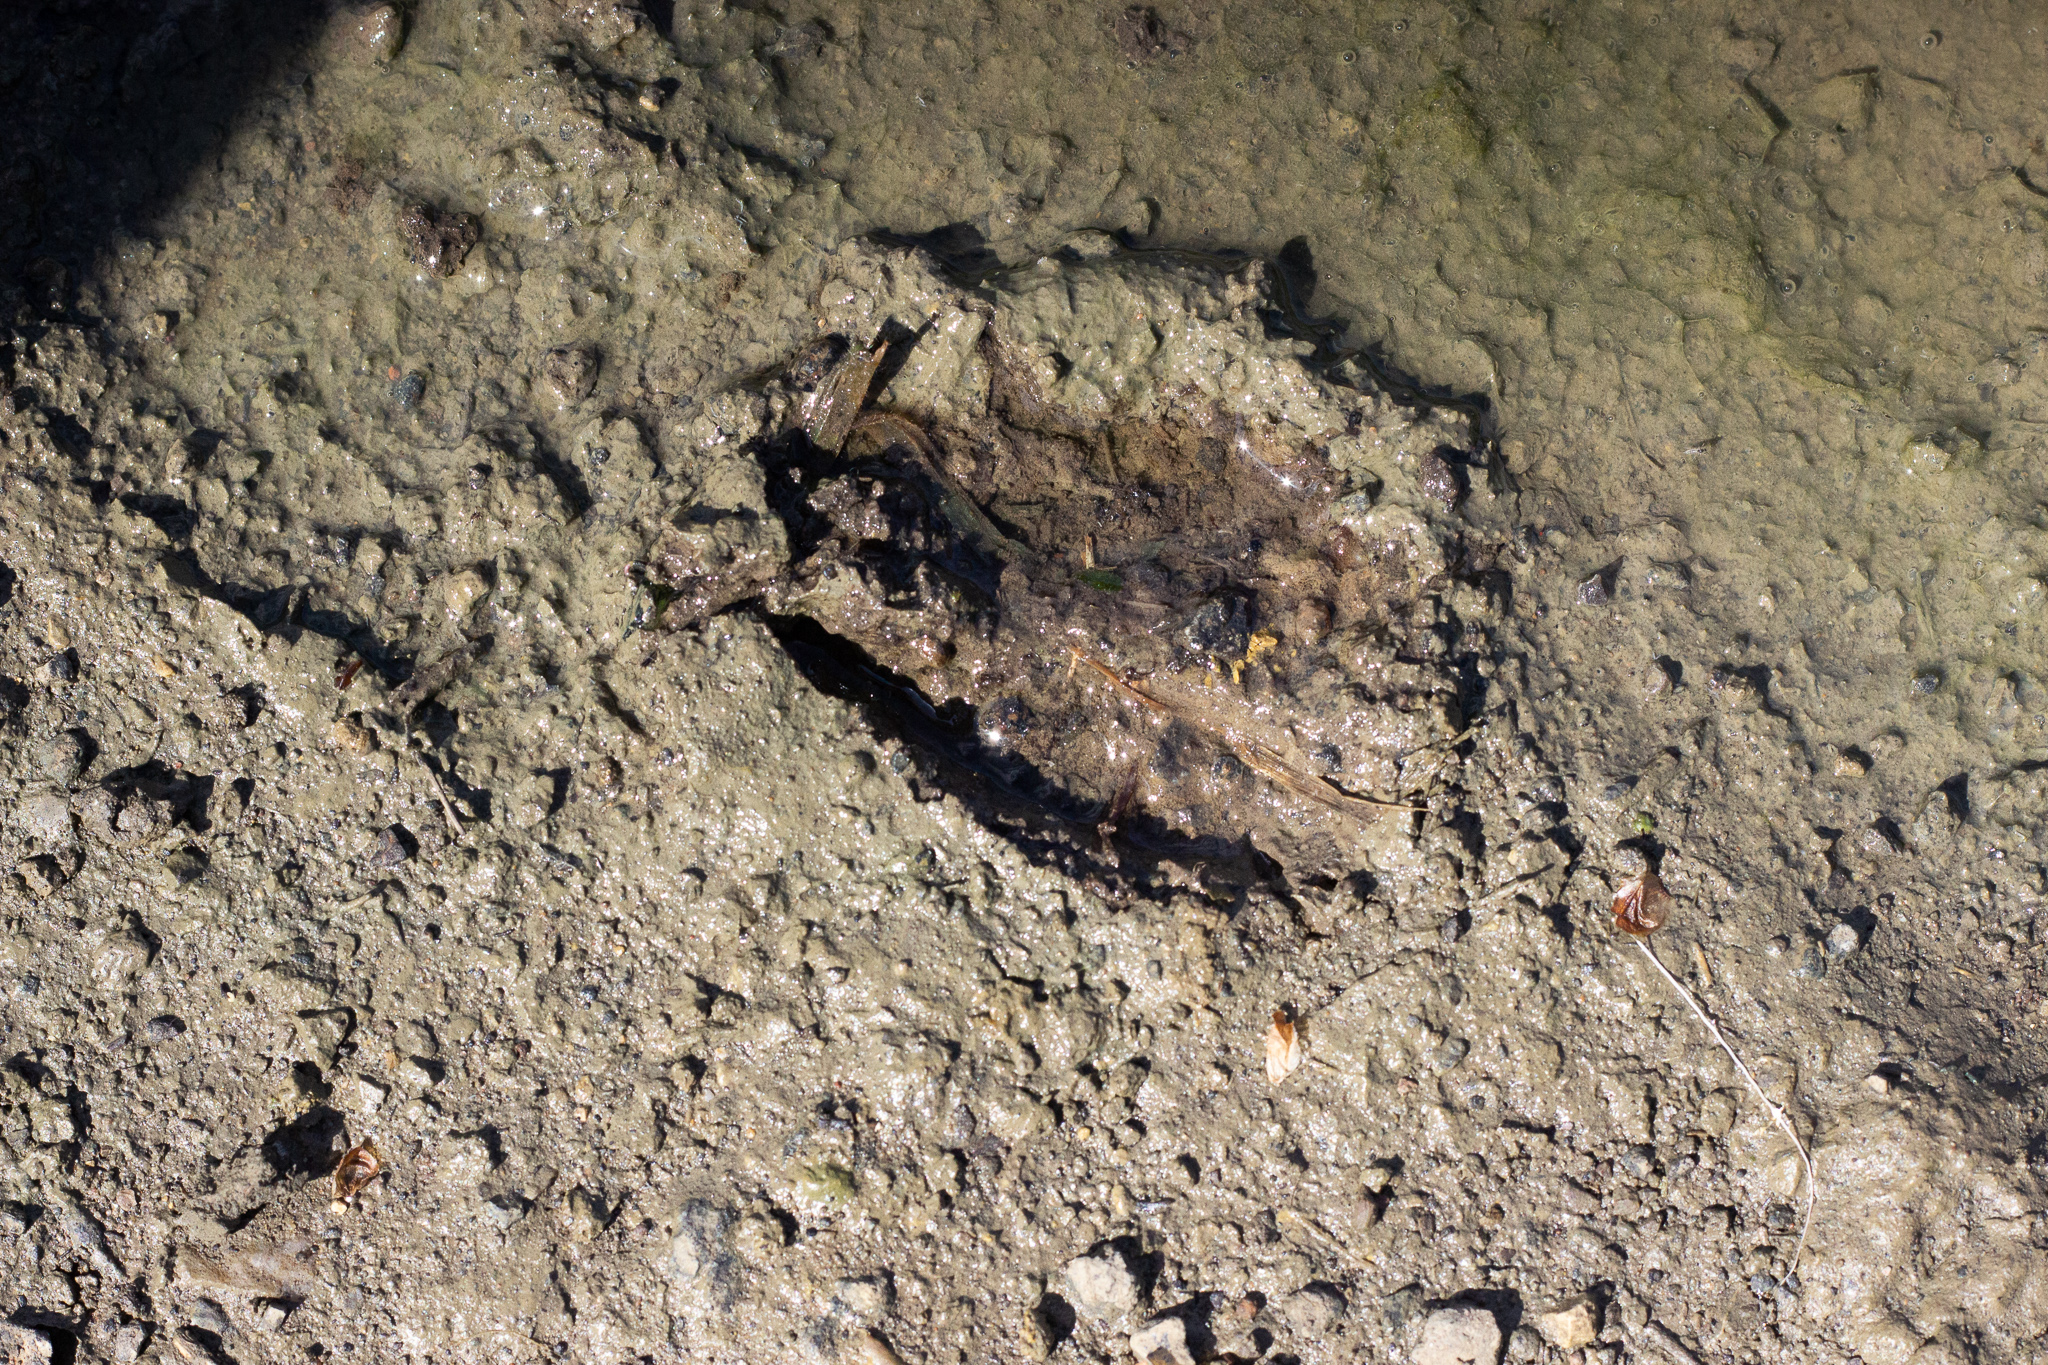 I spy a footprint………it's a deer hoof!